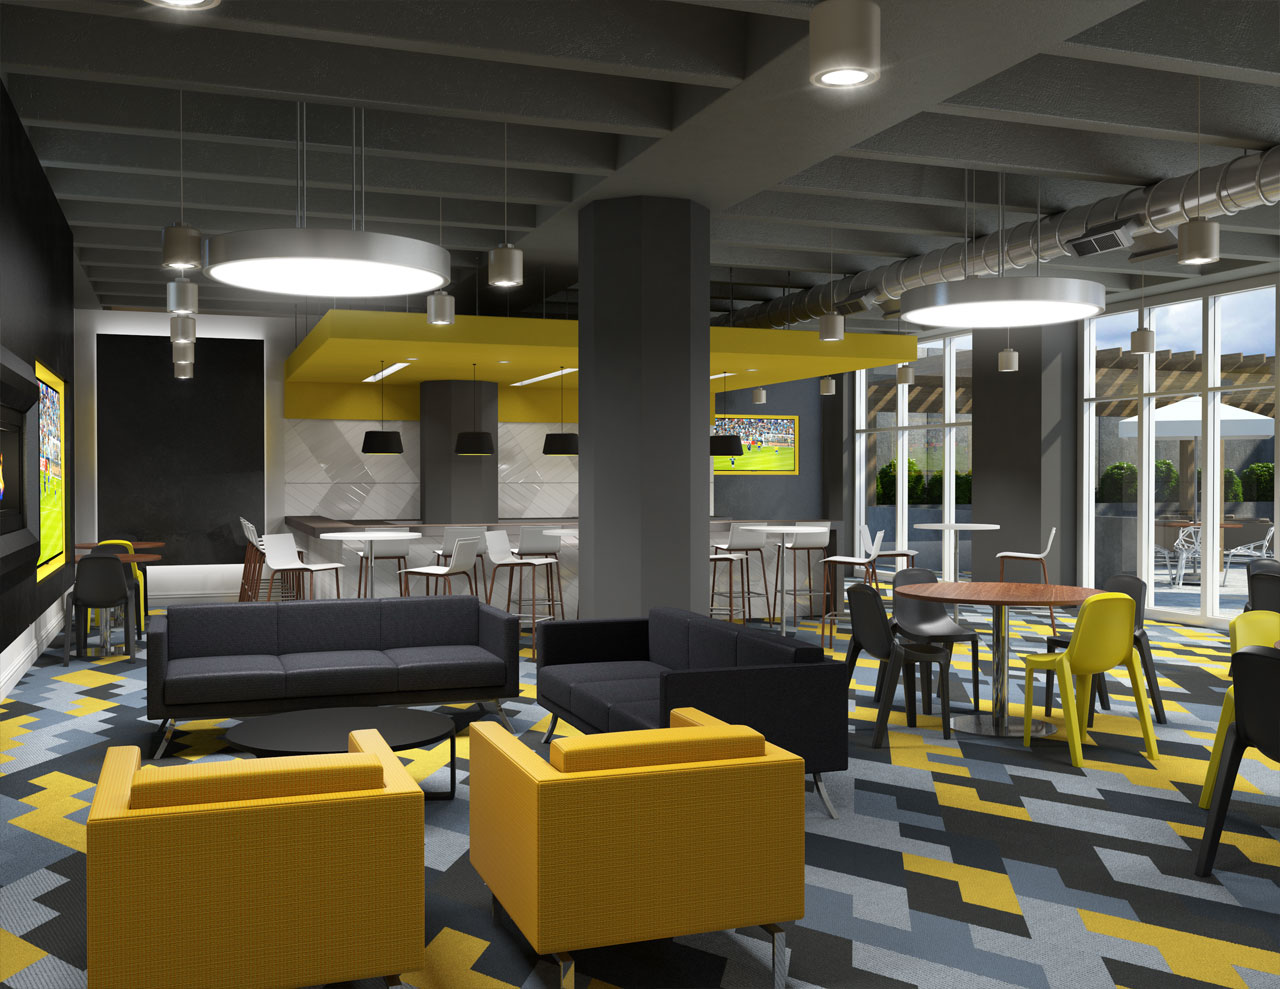 A 3D rendering of a brightly colored bar and meeting area for a large condo, including seating areas and a full bar at rear.